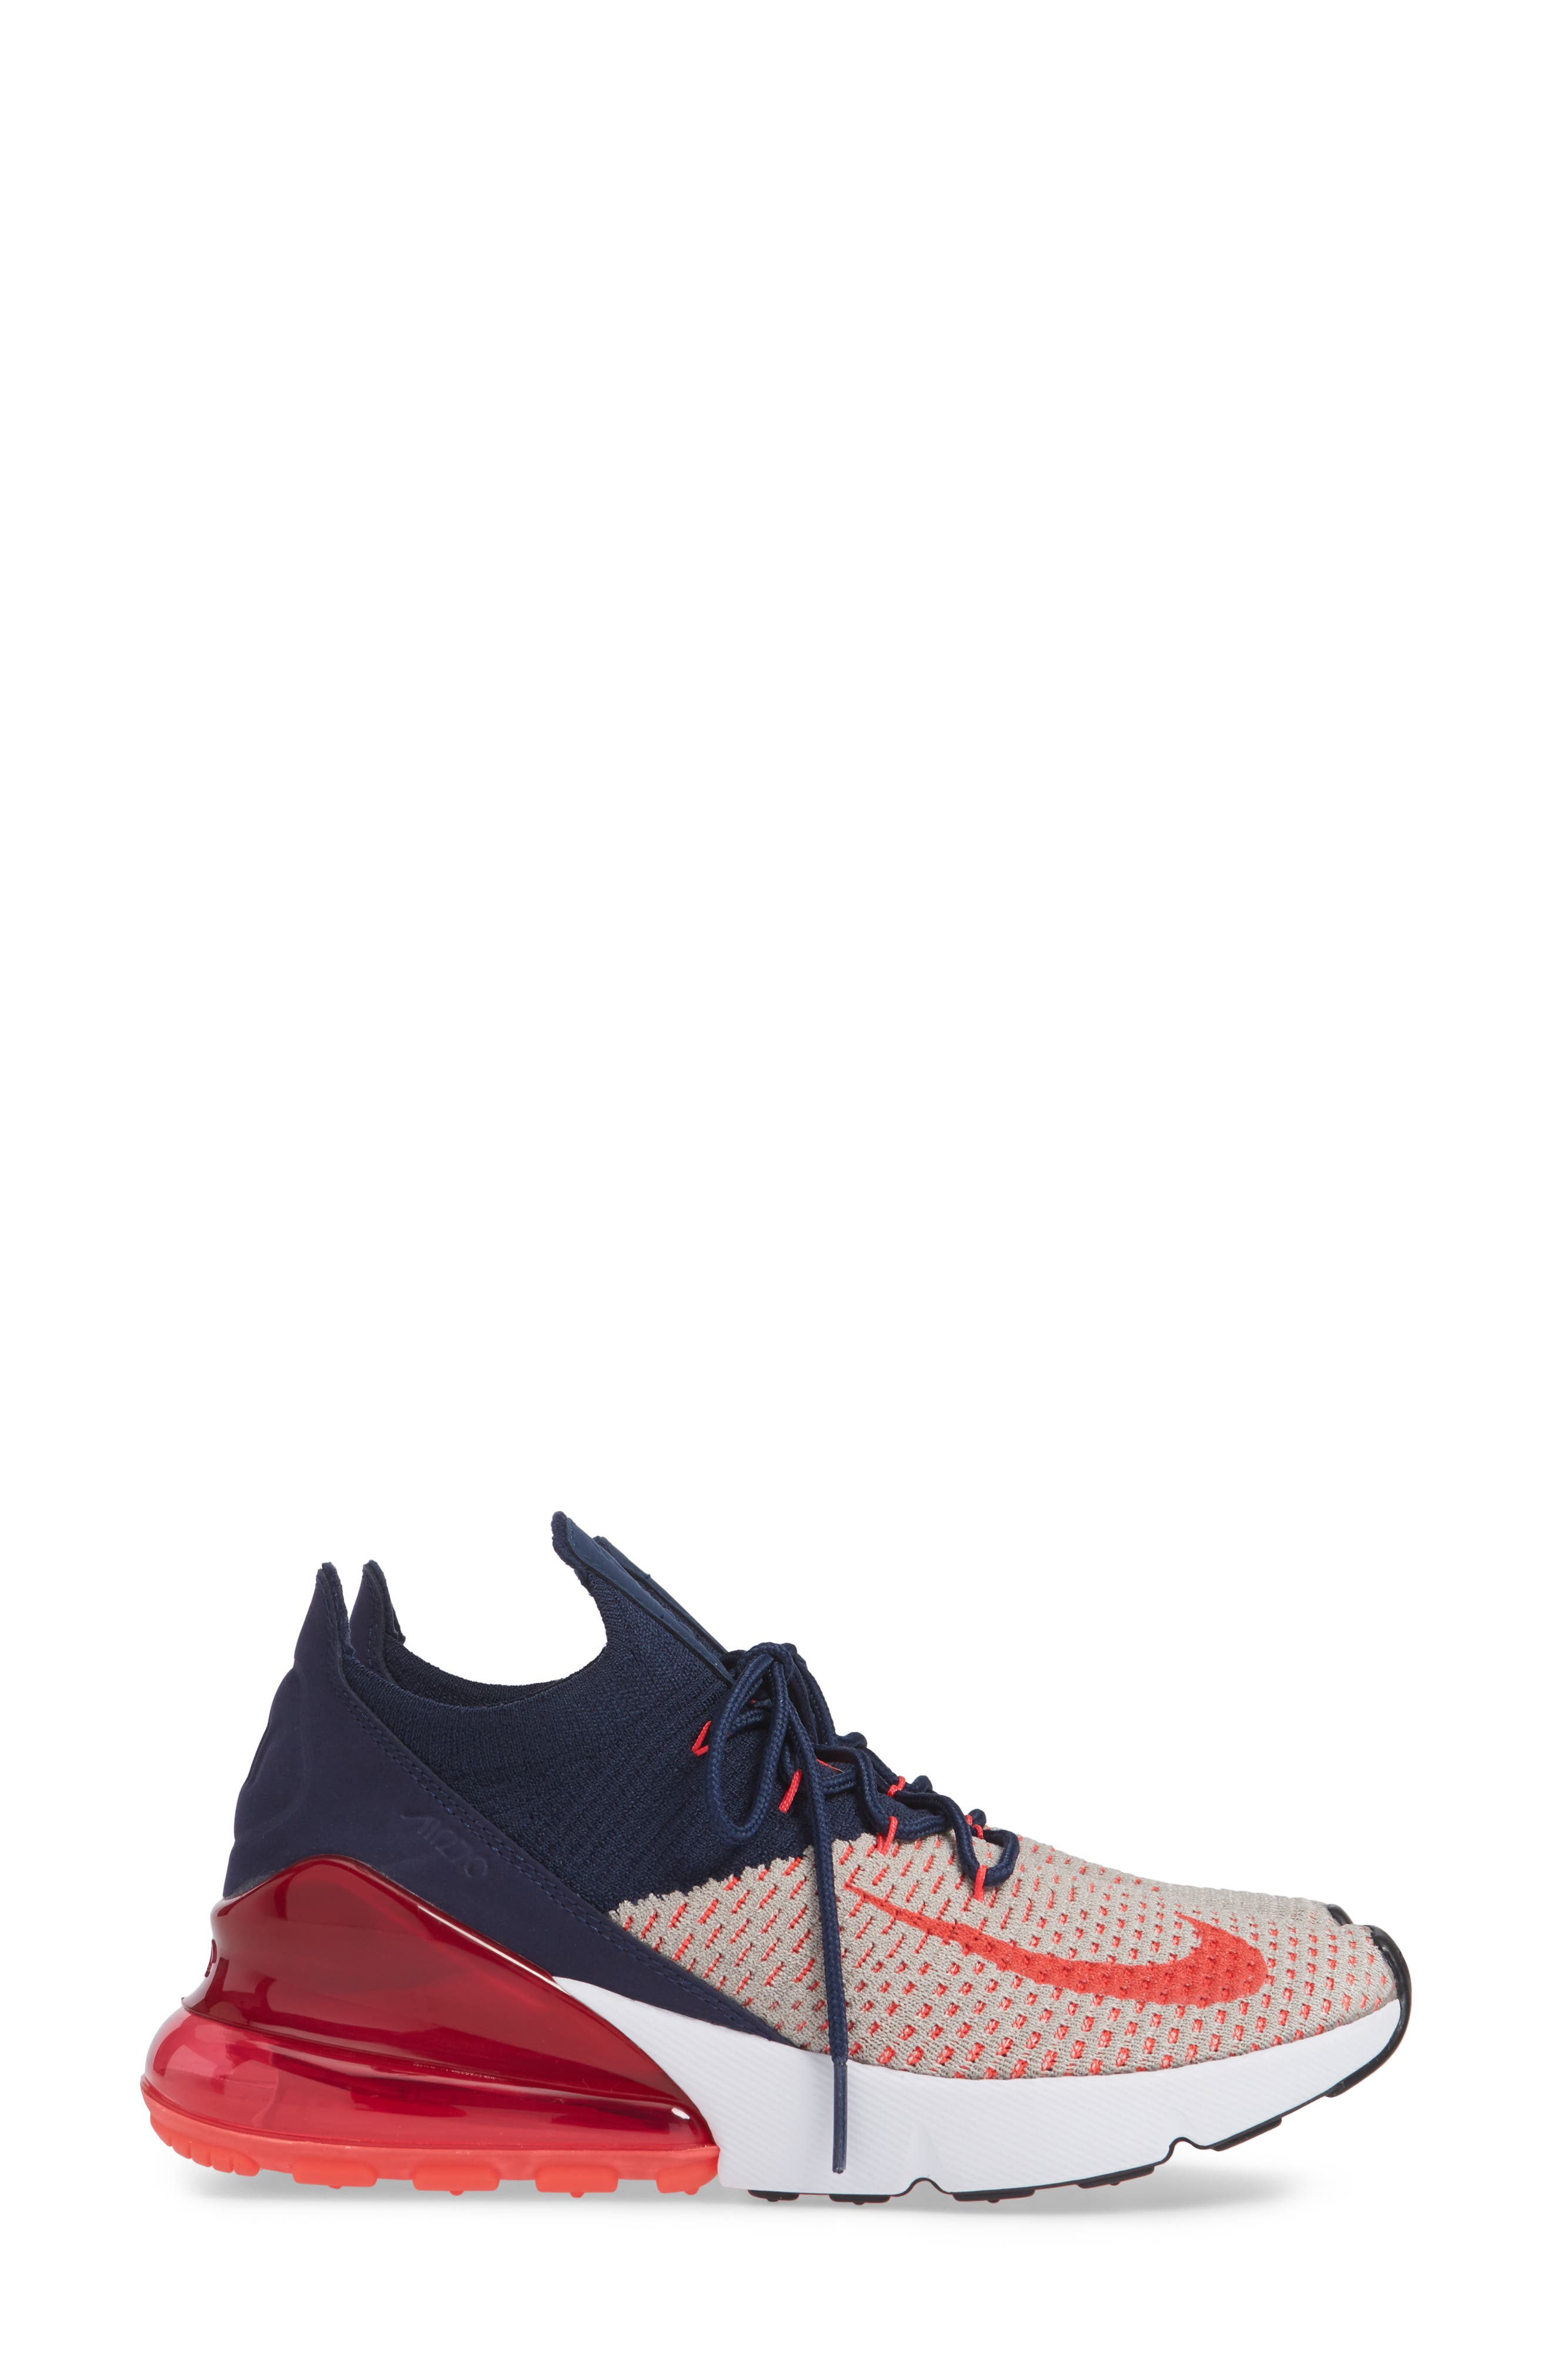 Air Max 270 Flyknit Sneaker,                             Alternate thumbnail 5, color,                             Moon Particle/ Red Orbit/ Navy